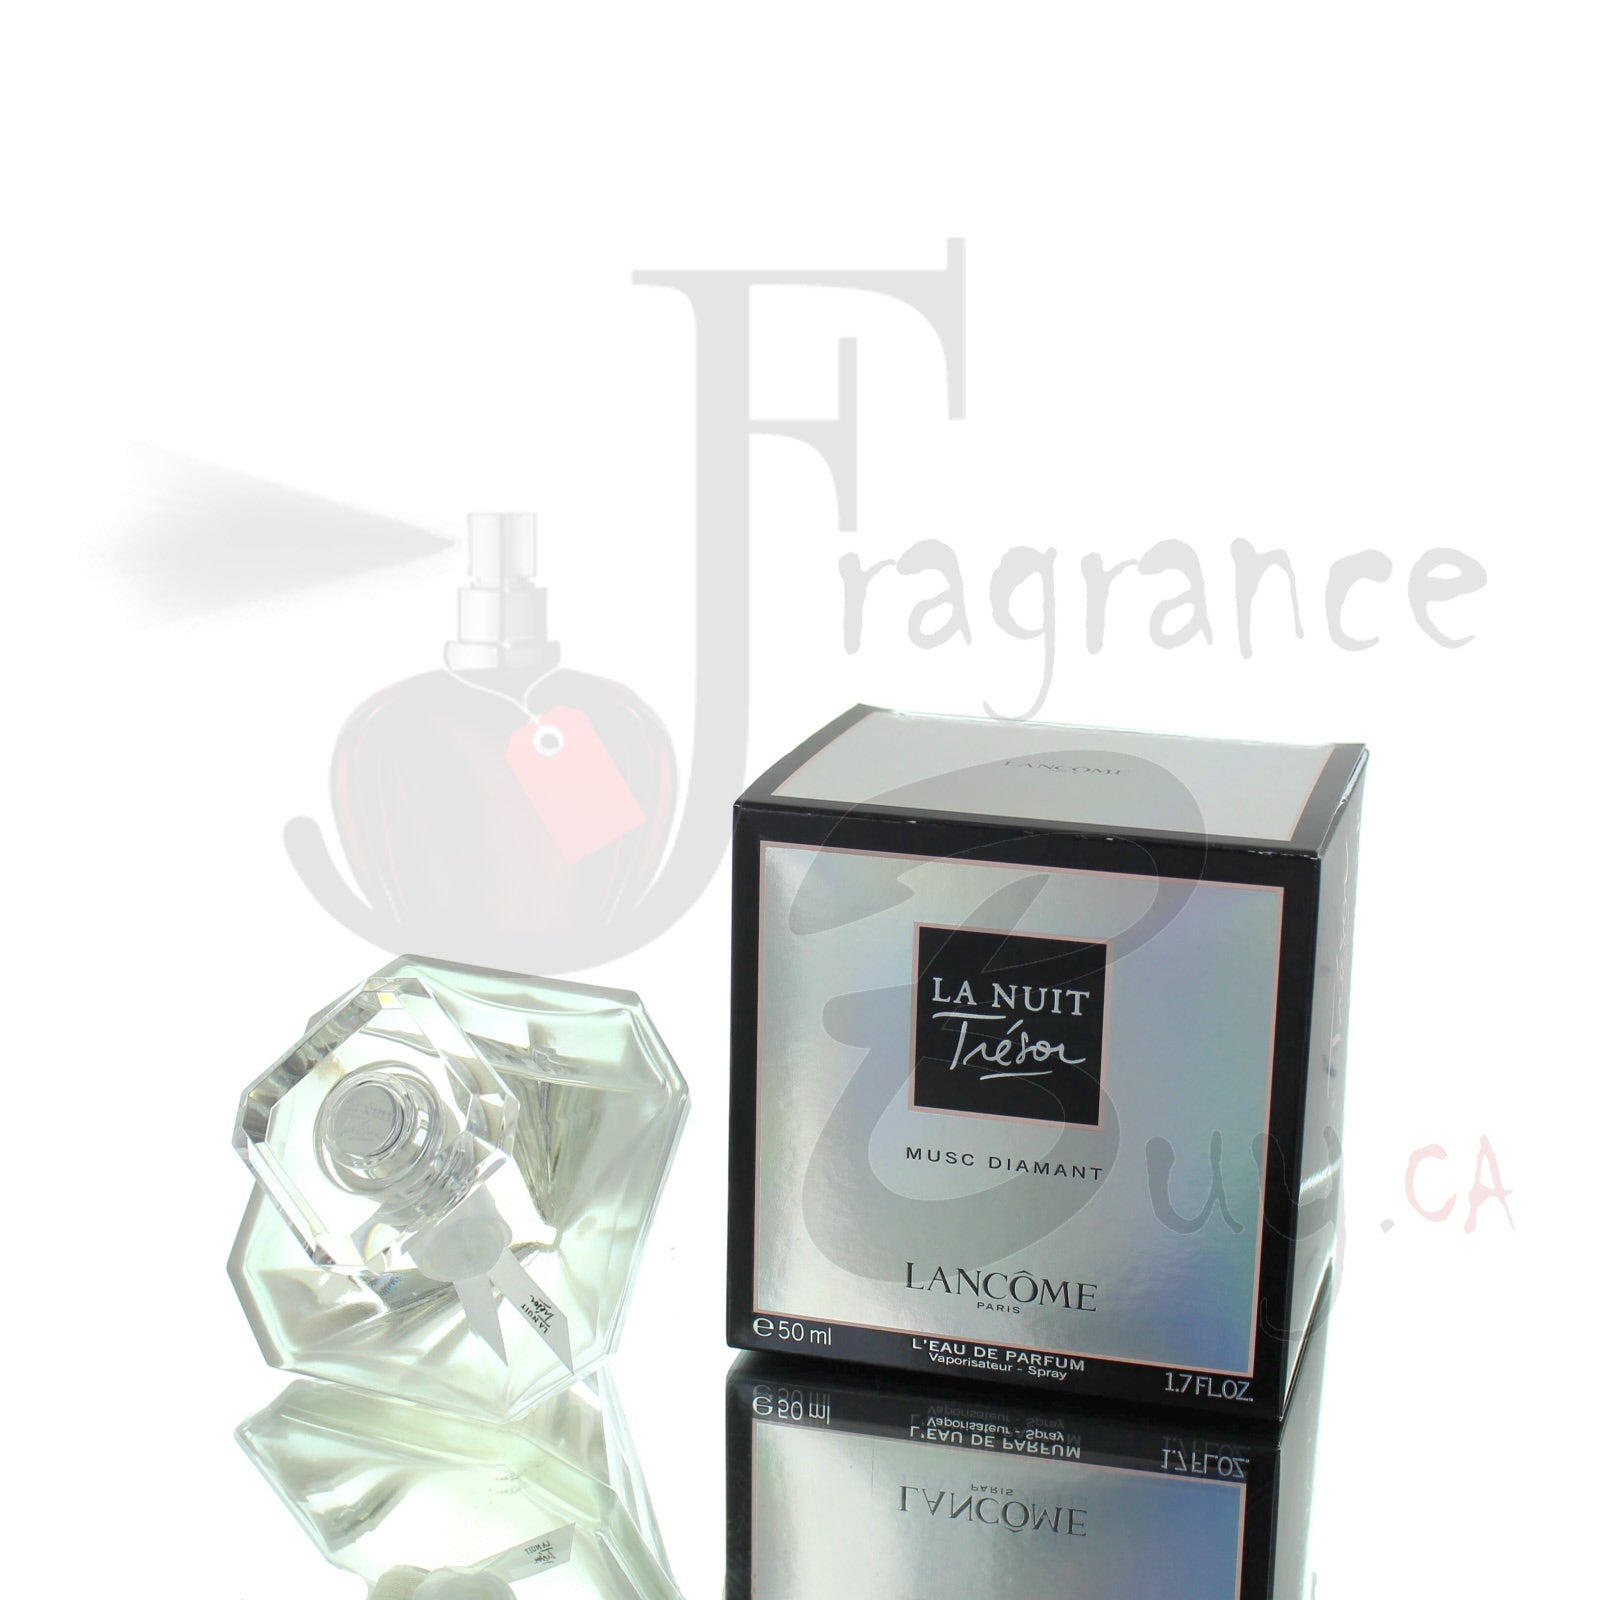 Lancome La Nuit Tresor Musc Diamant For Woman